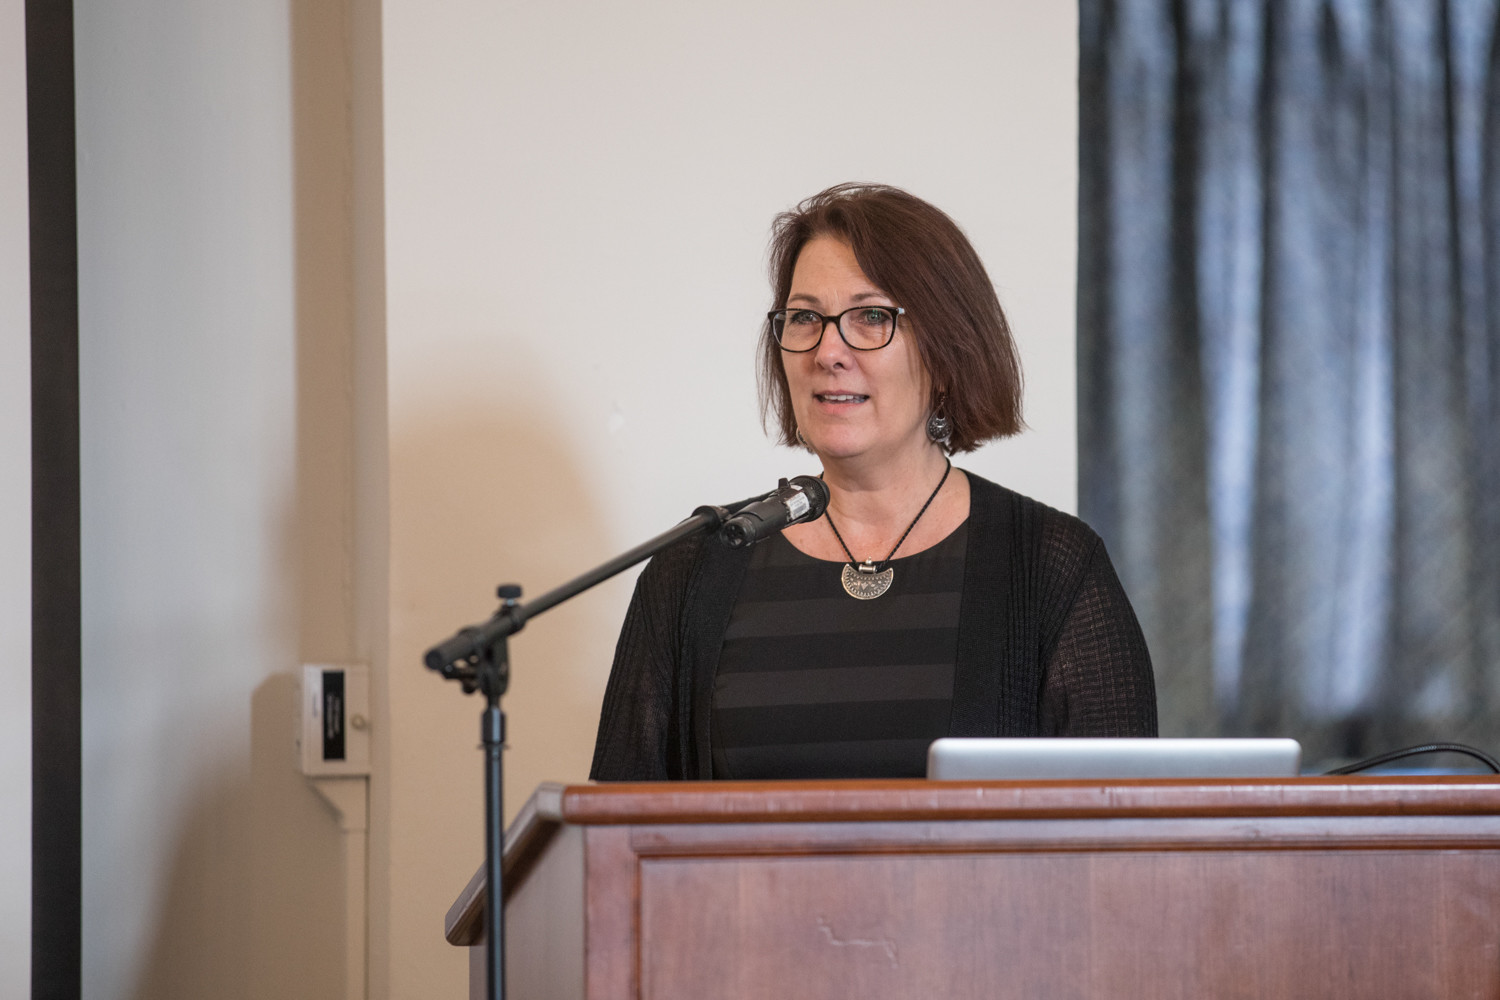 Victoria Sanford, director of Lehman College's Center for Human Rights and Peace Studies, speaks at a panel discussion about the challenges Puerto Rico faces in the aftermath of Hurricane Maria.